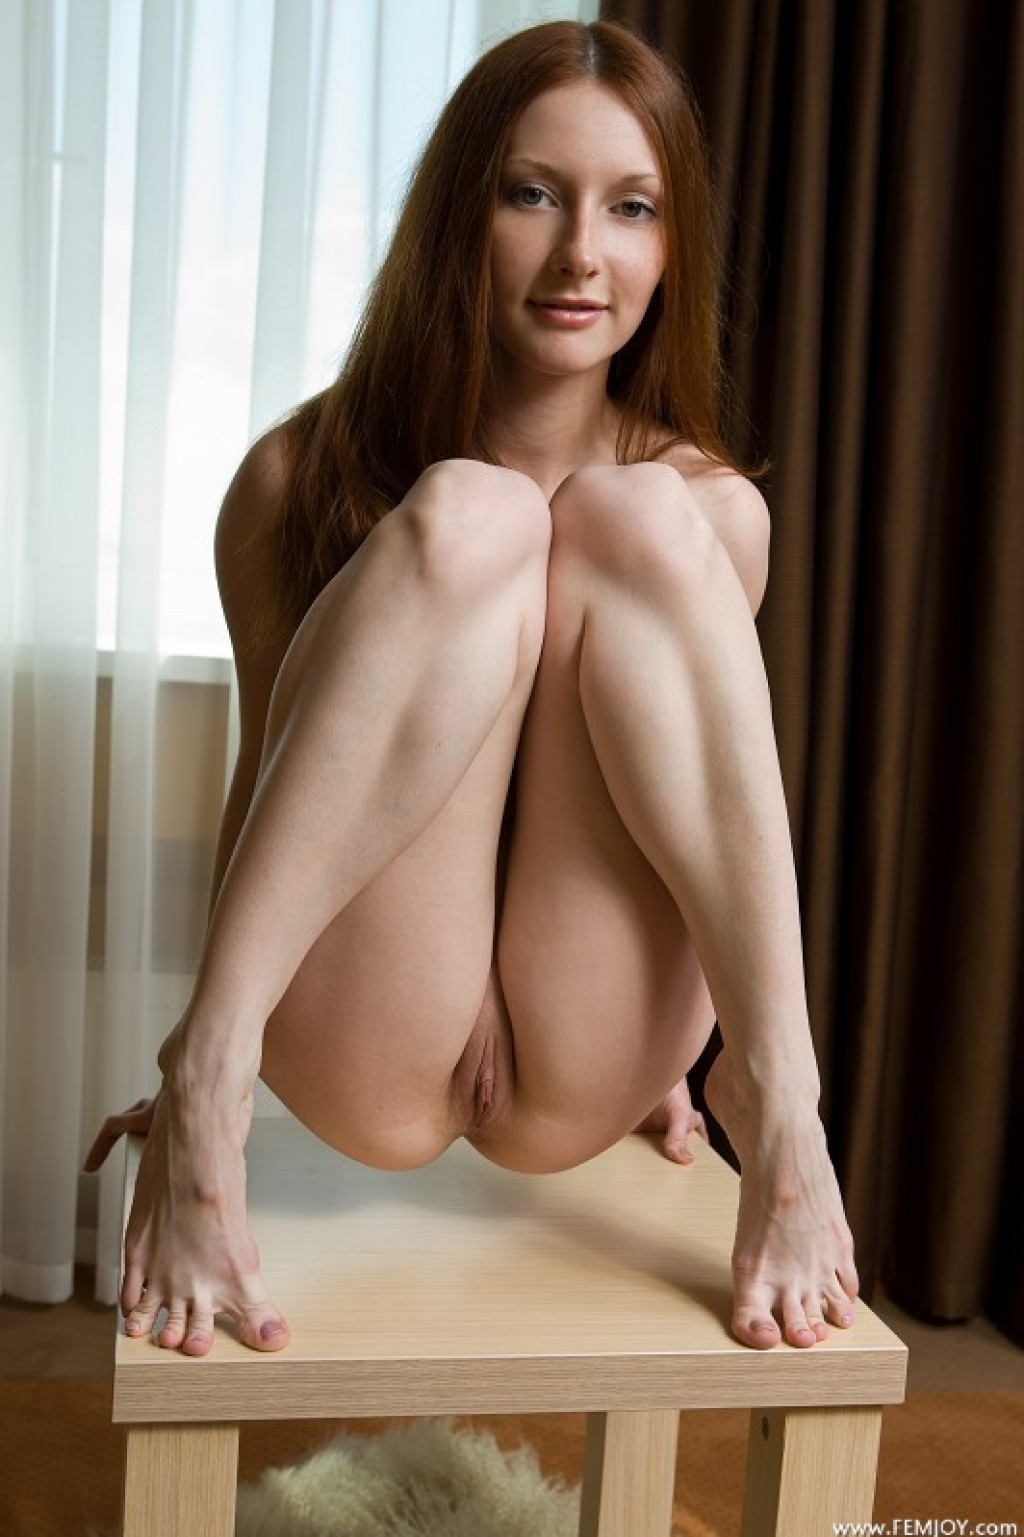 Vada nude pics in Make Me Some Space from FEMJOY